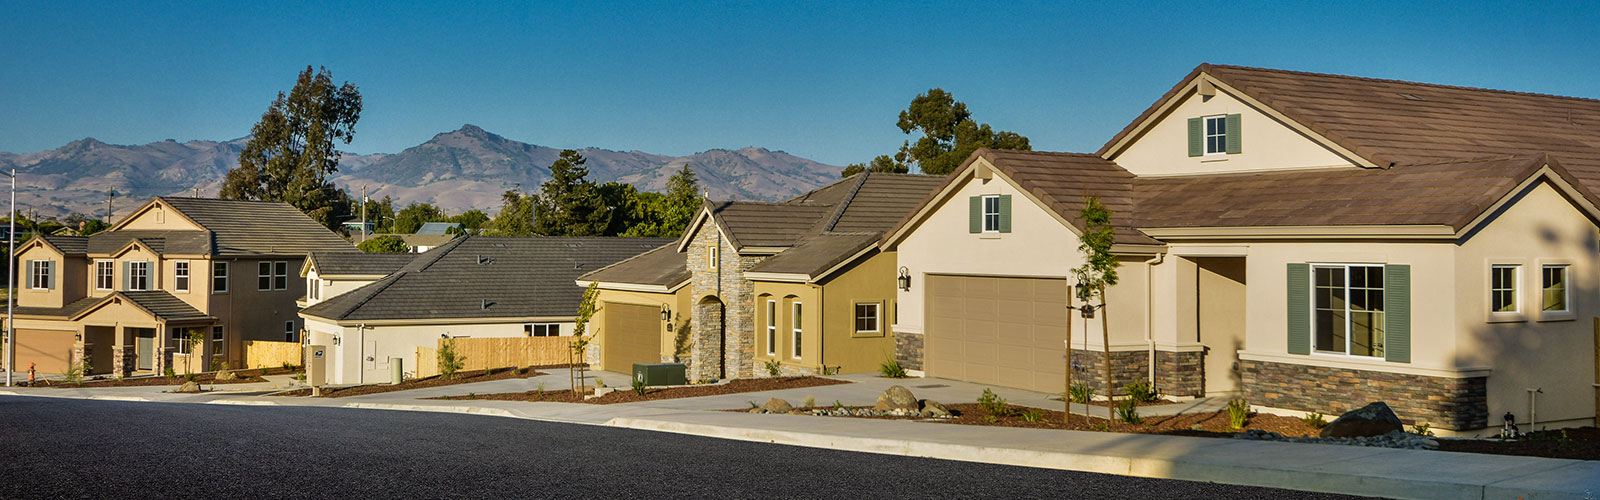 Highlands Anderson Homes Anderson Homes